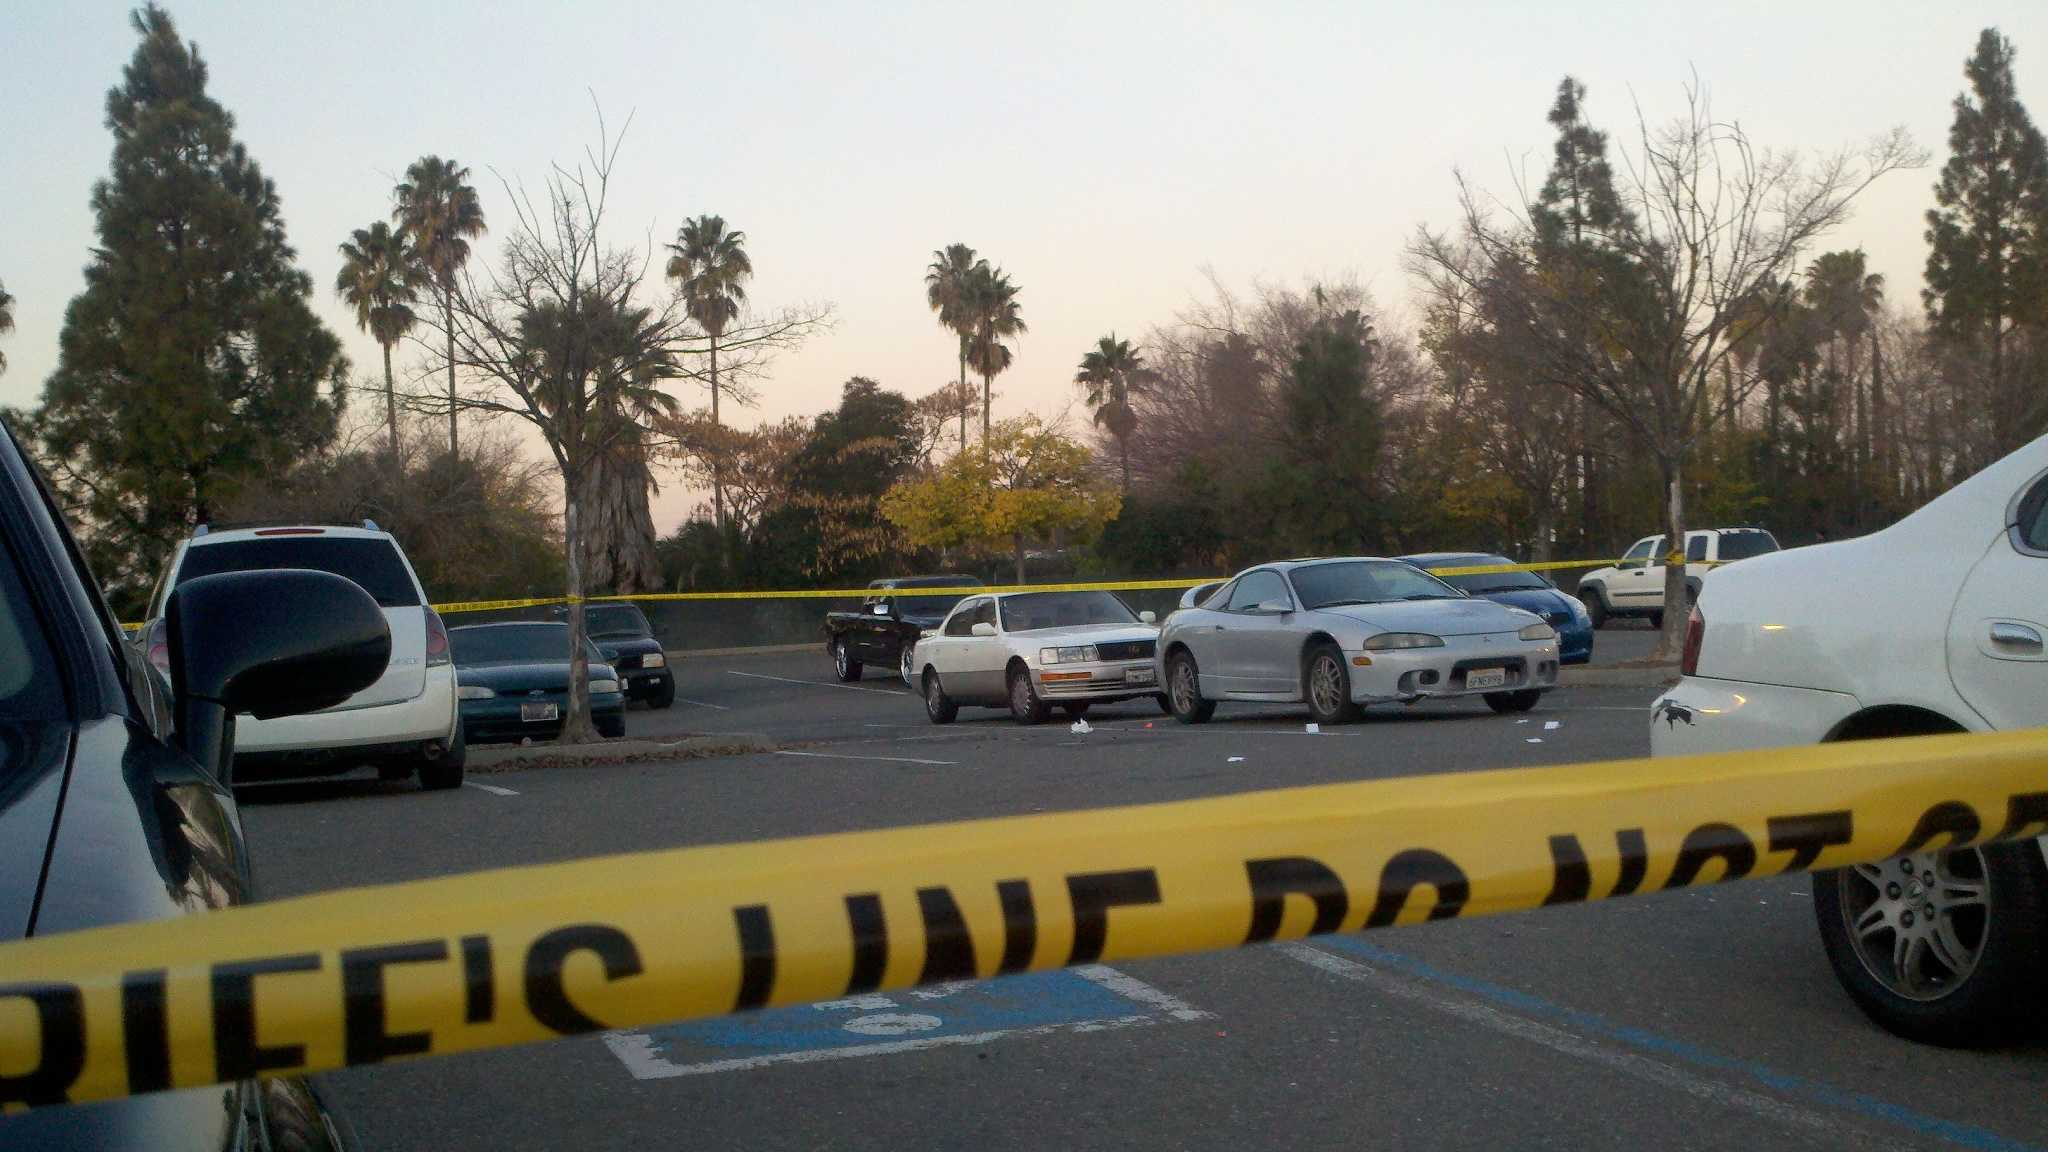 An 11-month-old was inside a vehicle struck by gunfire during a shooting in a Sacramento store parking lot on Monday.